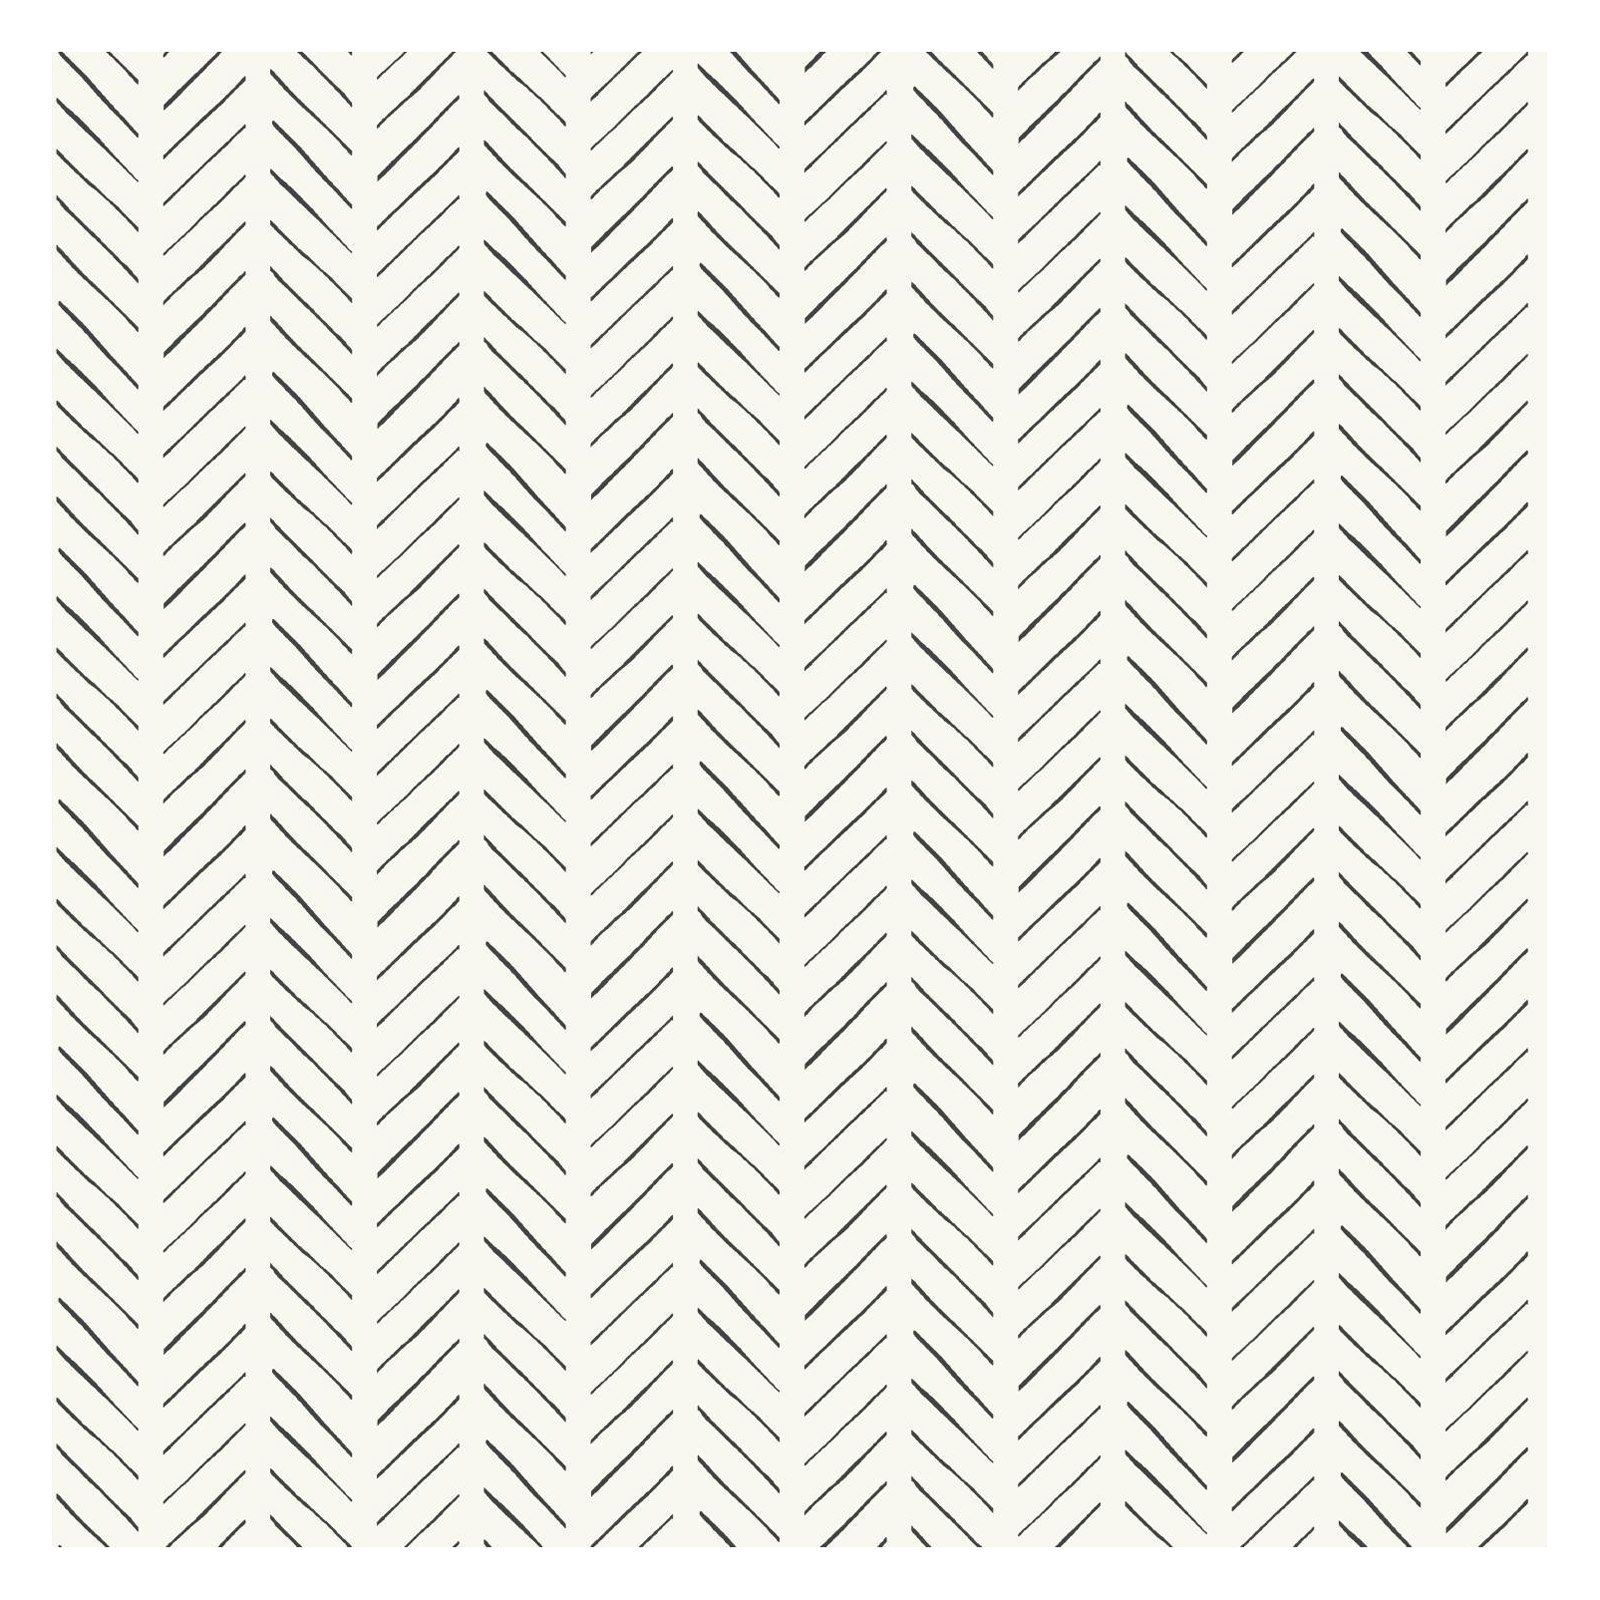 Magnolia Home By Joanna Gaines Pick Up Sticks Peel And Stick Wallpaper Peel And Stick Wallpaper Joanna Gaines Wallpaper Magnolia Homes